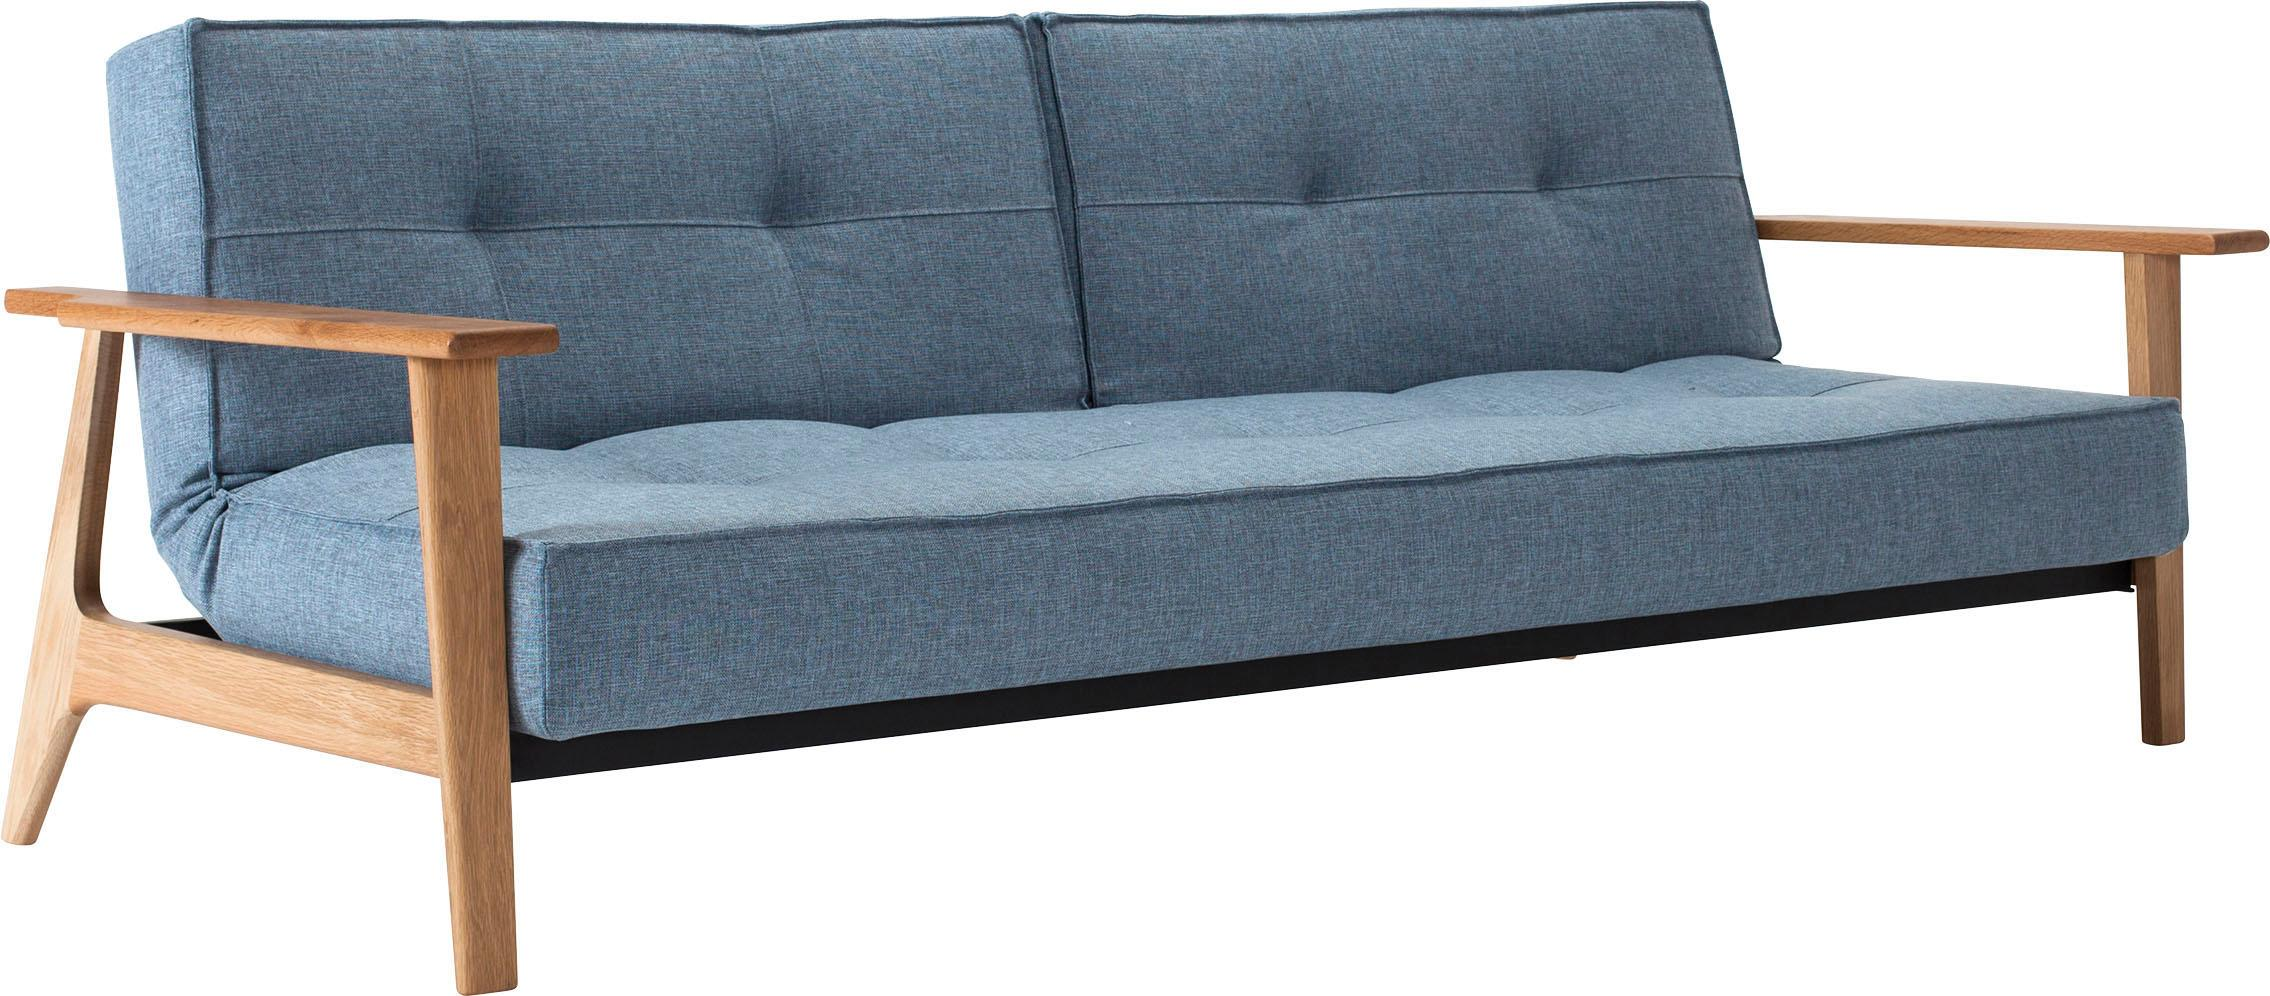 INNOVATION? Schlafsofa Splitback